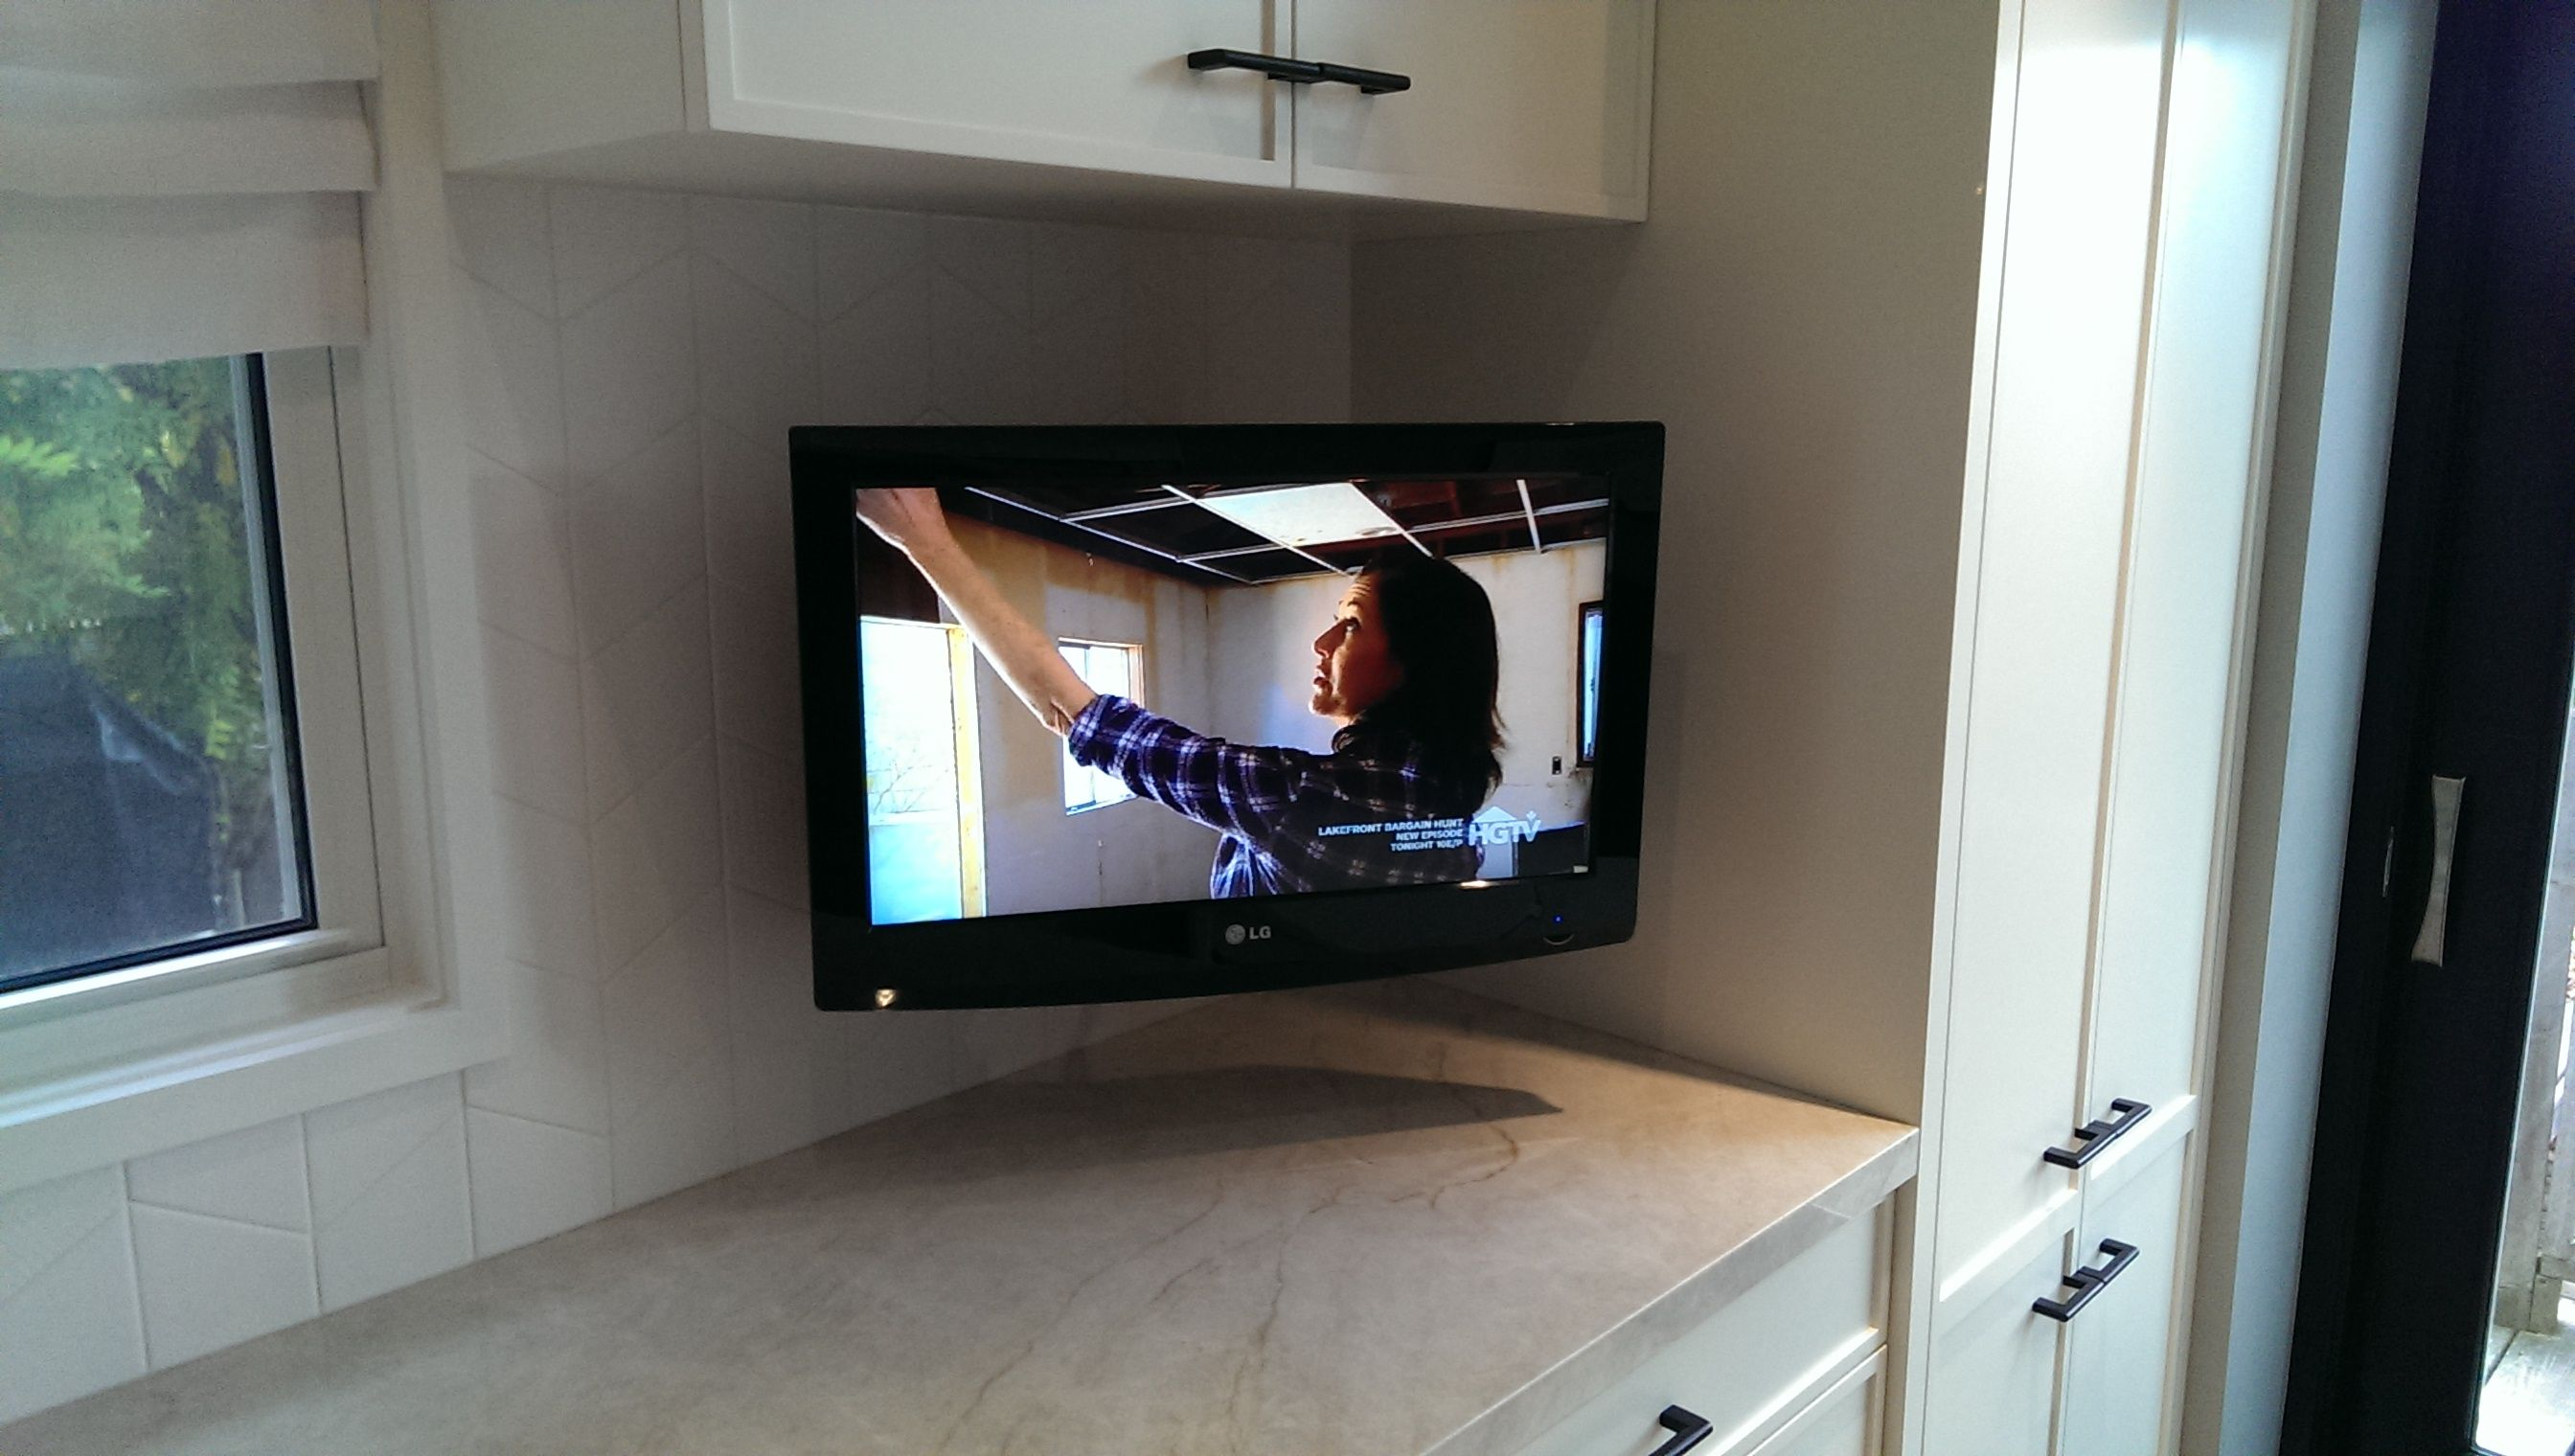 Kitchen Tv Mount Zinc Top Island No Visible Cables Wall Mounted Mounts